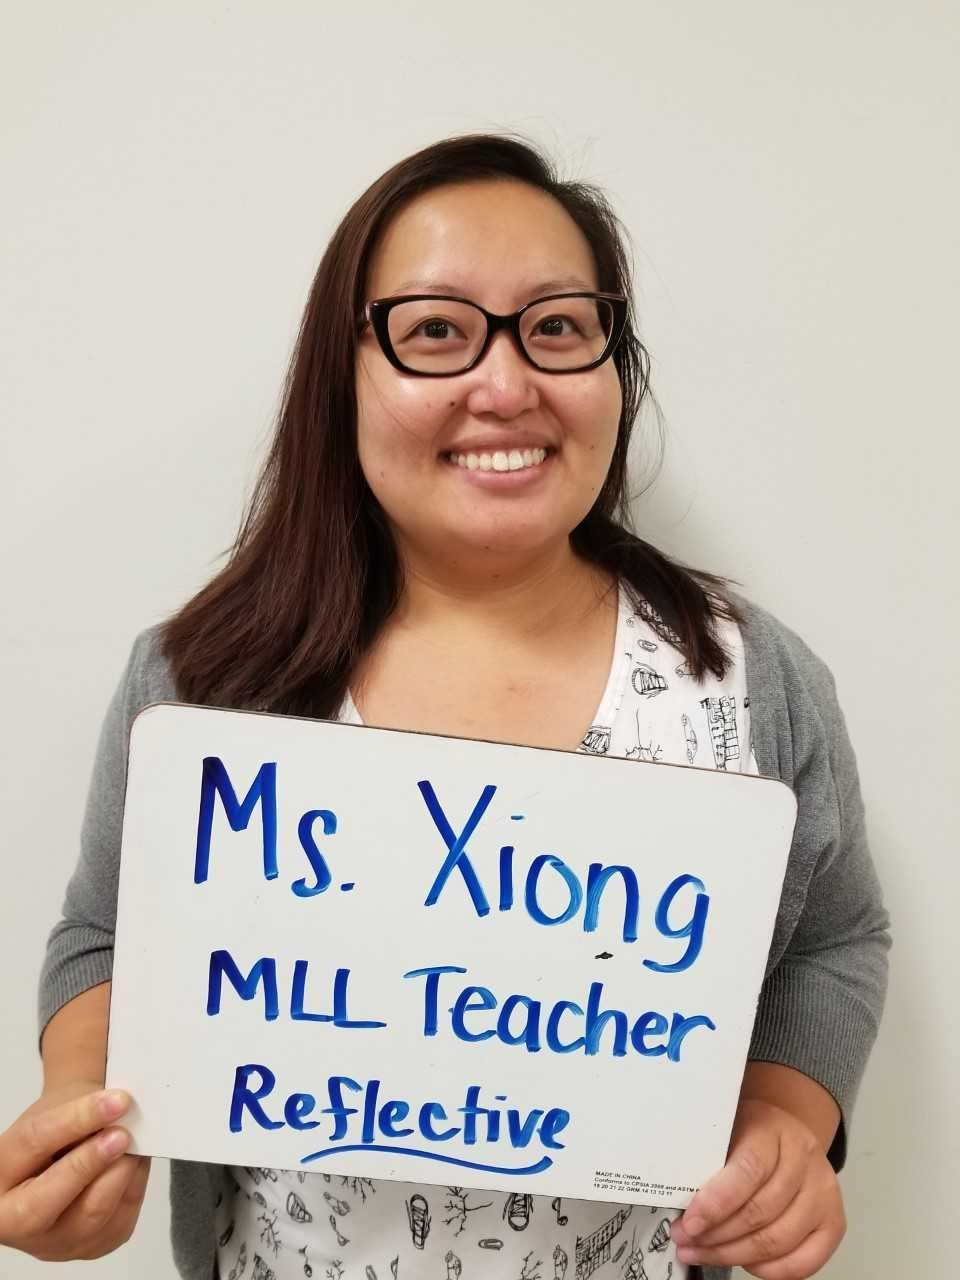 Ms. Xiong